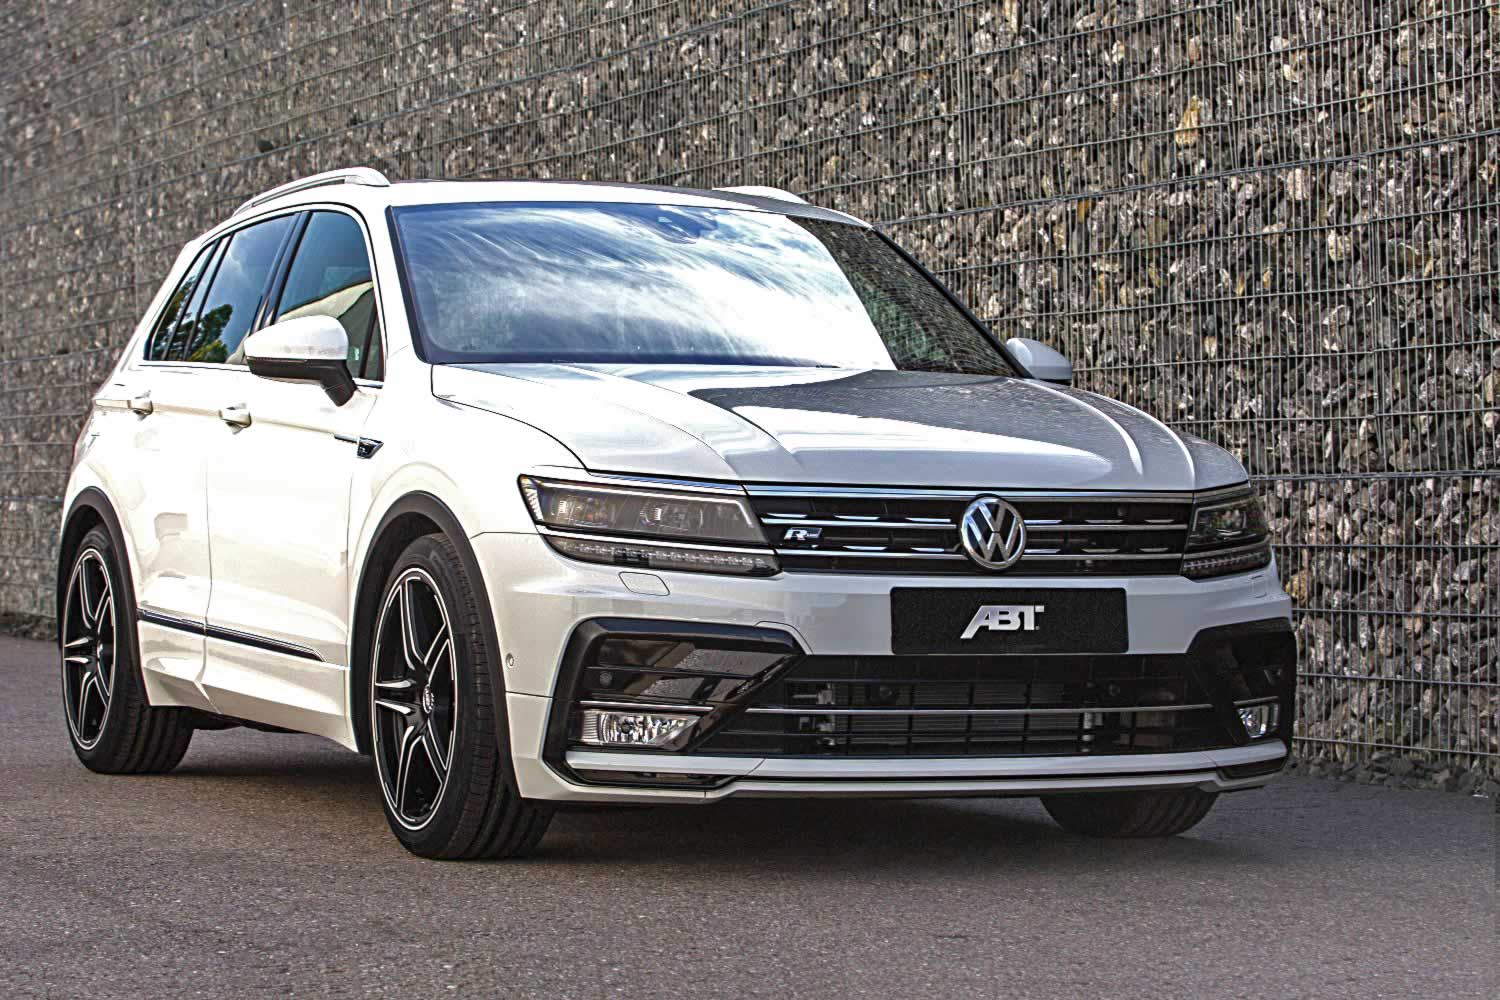 abt tuning volkswagen tiguan. Black Bedroom Furniture Sets. Home Design Ideas